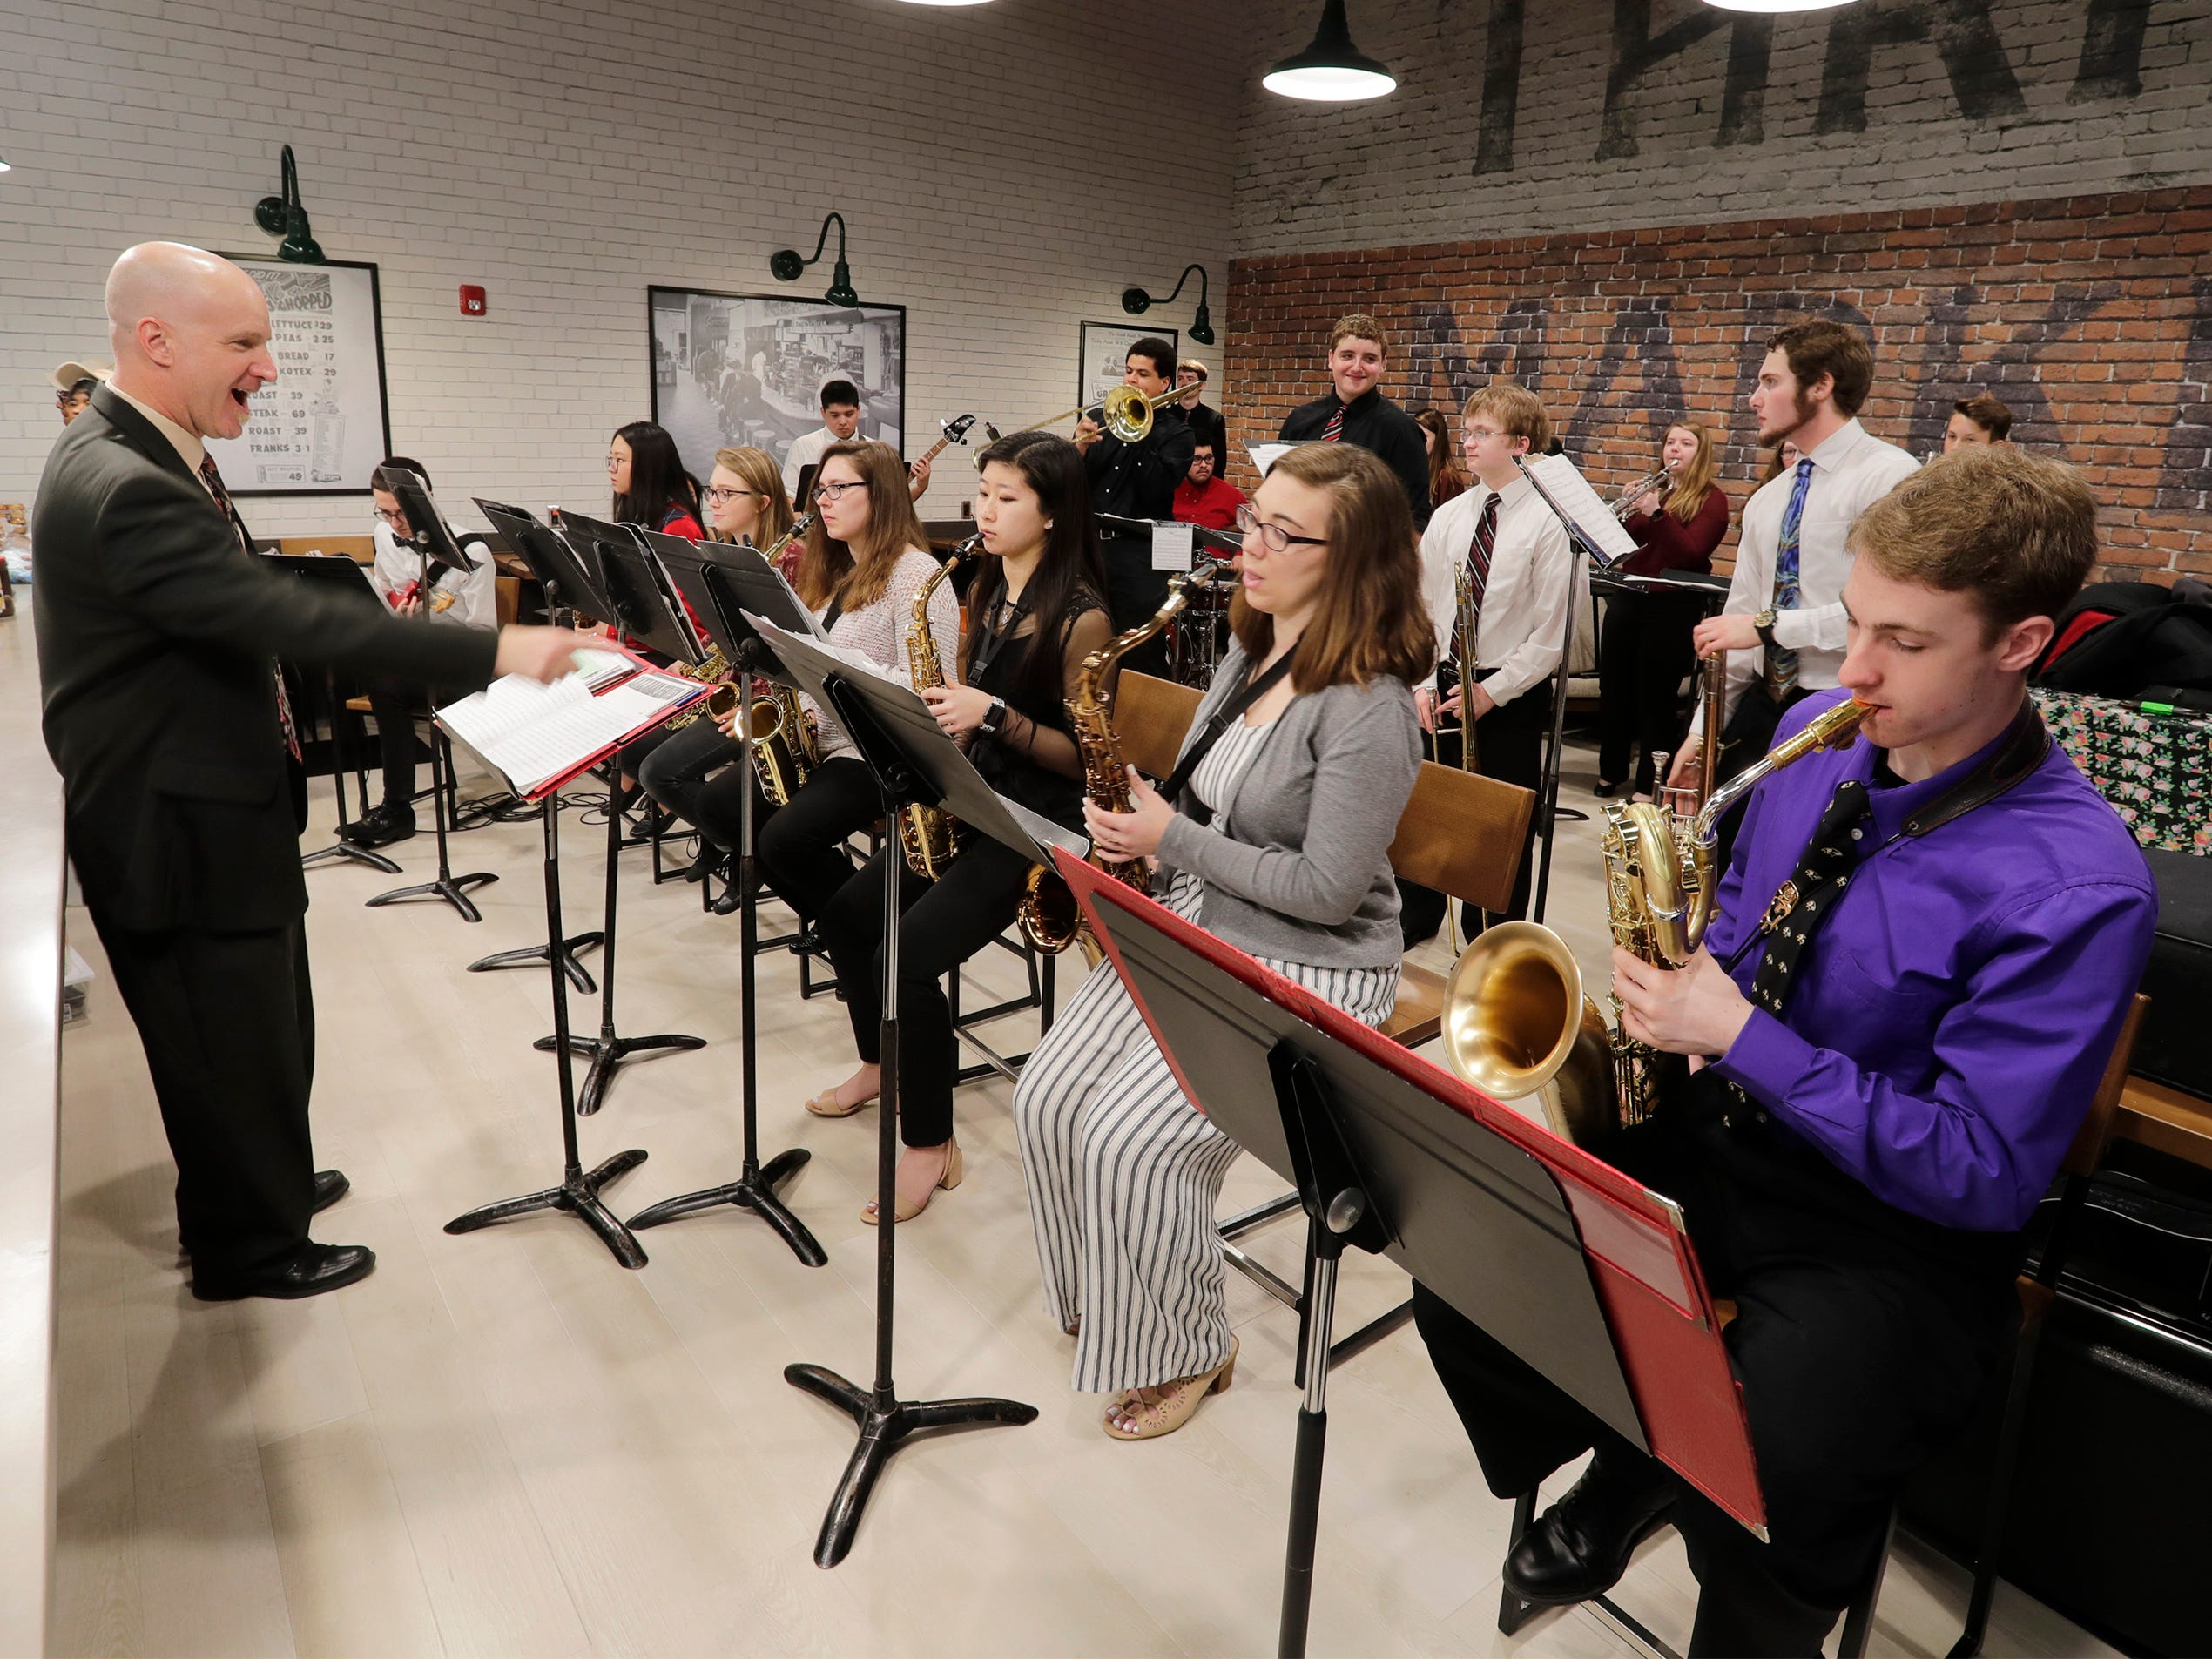 The Sheboygan South jazz band performs under the baton of Wade Heinen during the Grand Opening at Meijer, Thursday April 25, 2019, in Sheboygan, Wis. The 155,000-square-foot supercenter has 300 employees on hand for opening day.